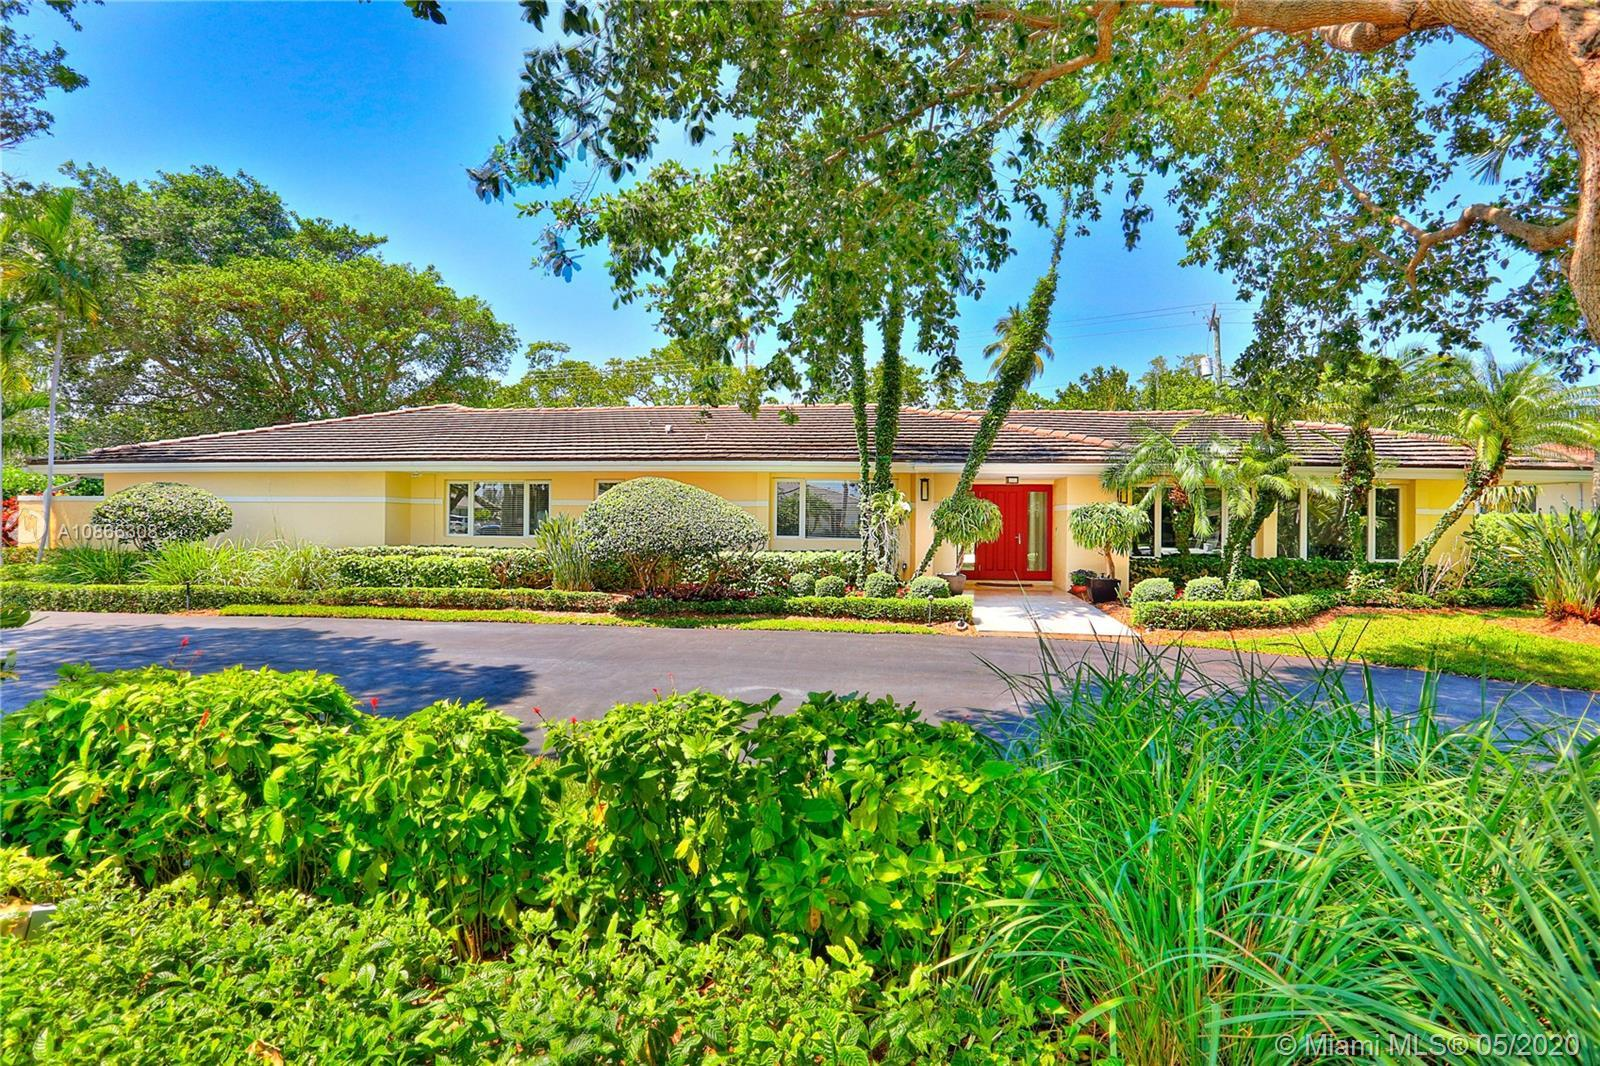 This home is ideally situated in the guard-gated community of Hammock Oaks & backs up to beautiful F